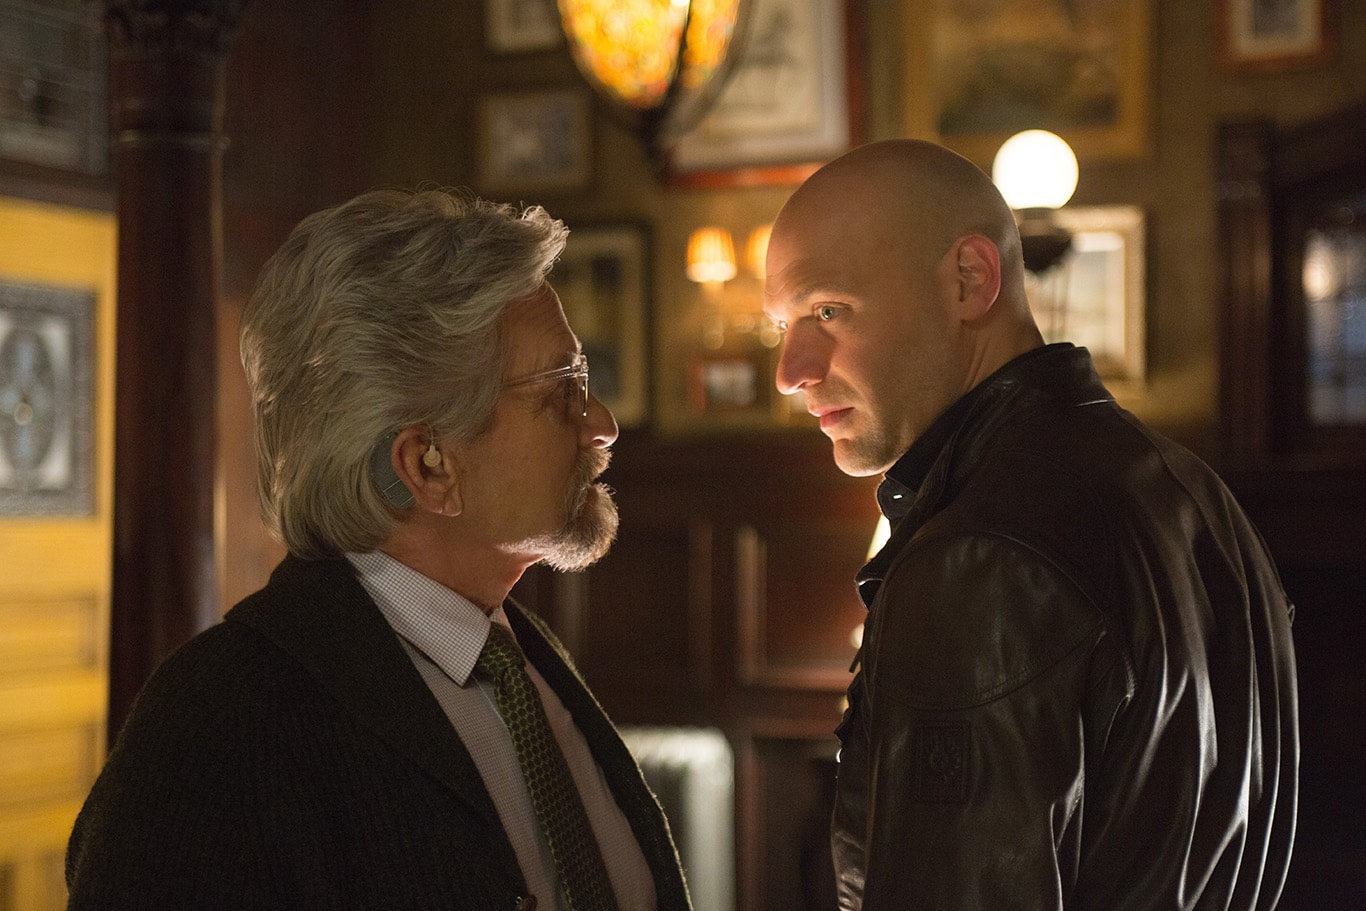 Michael Douglas (as Hank Pym) and Corey Stoll (as Darren Cross) in the movie Ant-Man